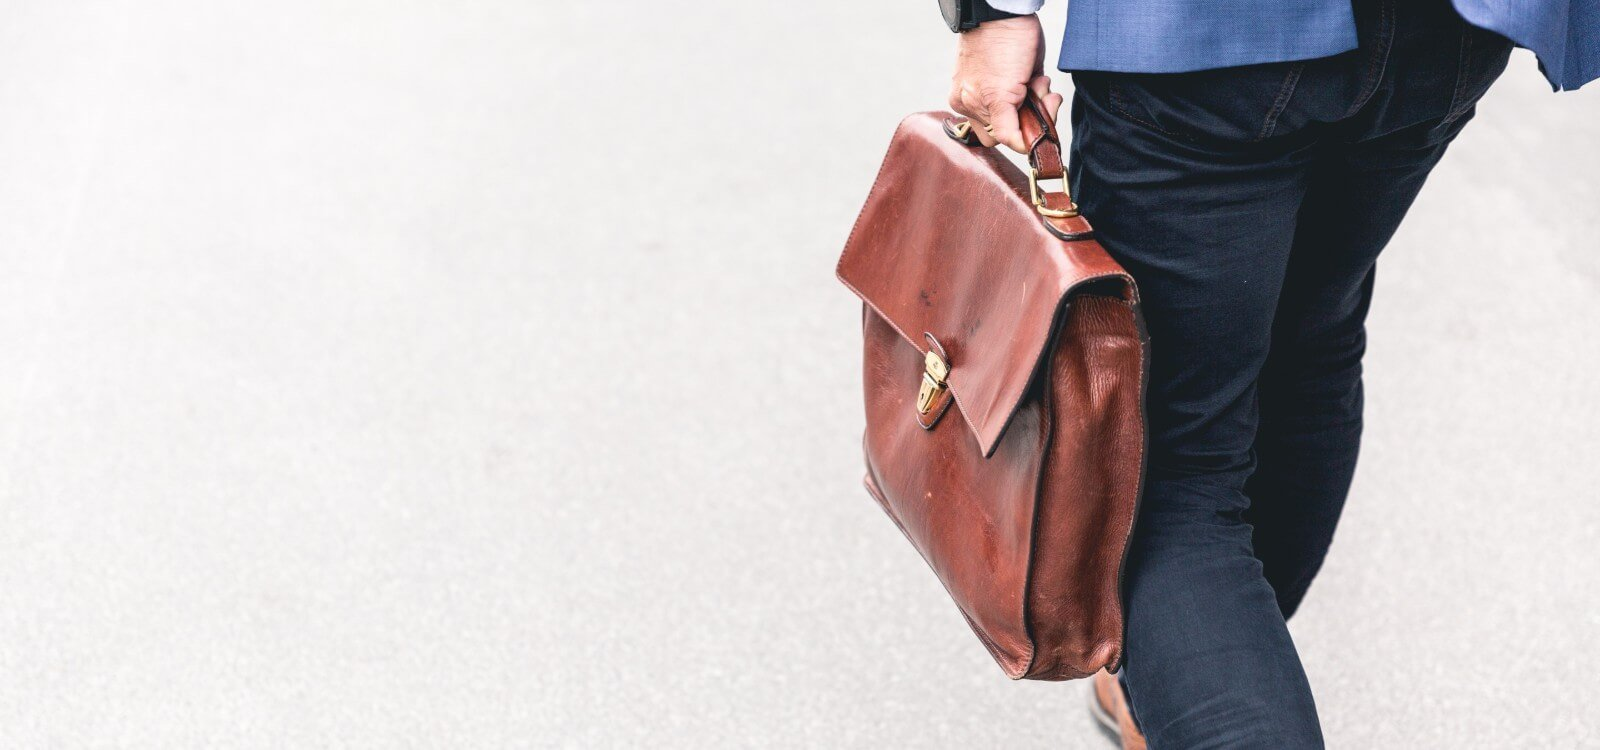 Should you leave your job to go back to school?